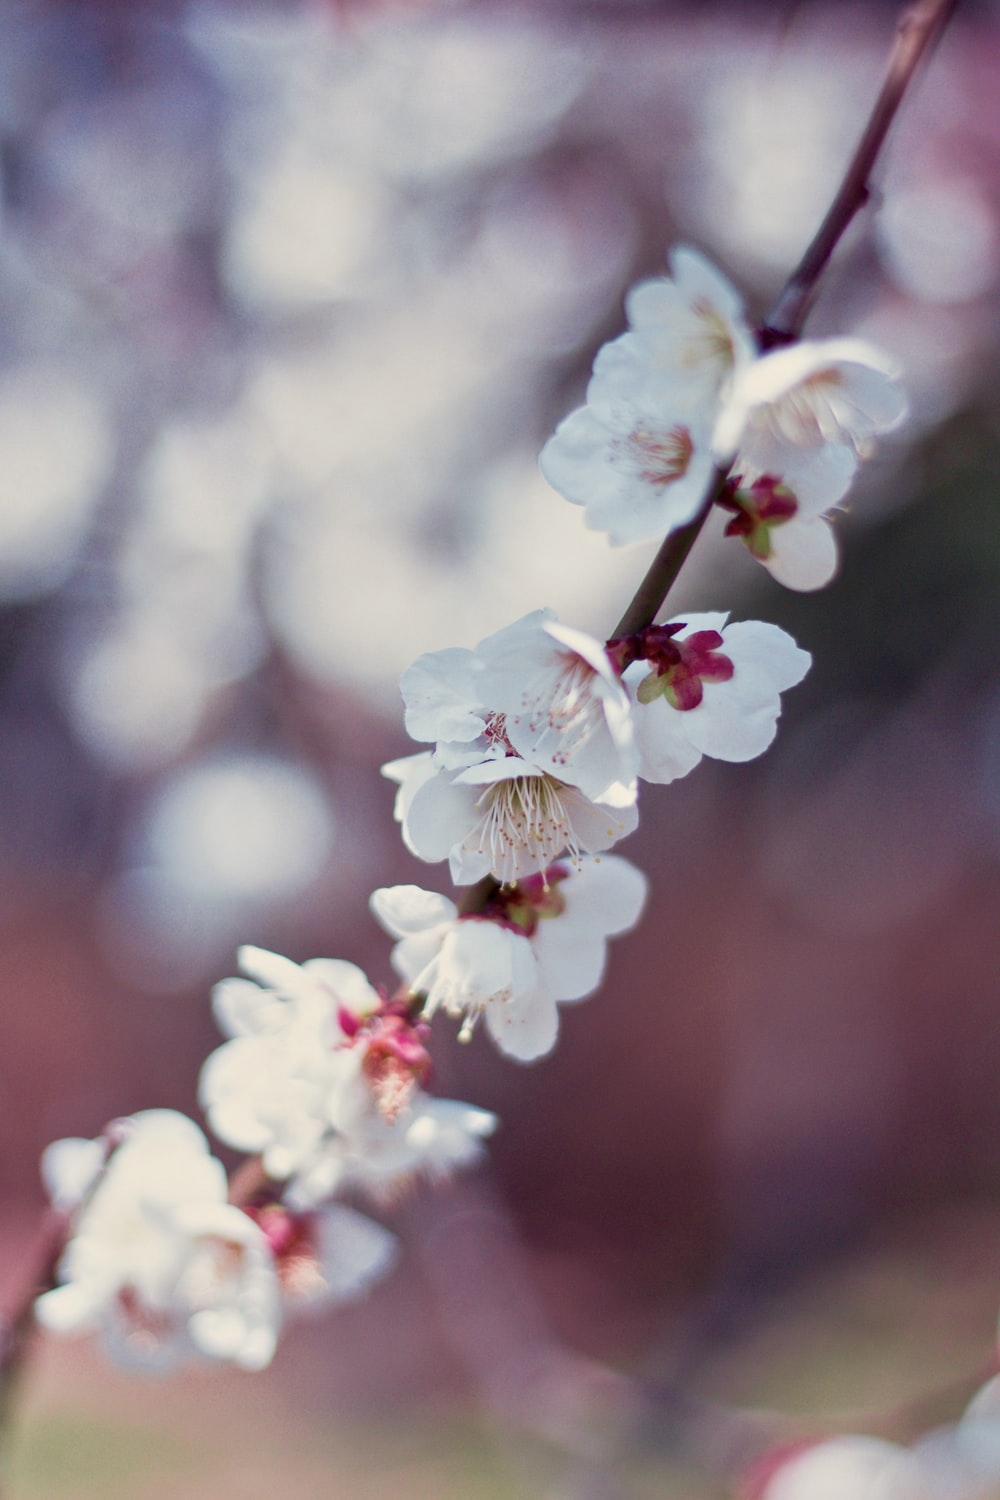 close-up photography of white cherry blossom